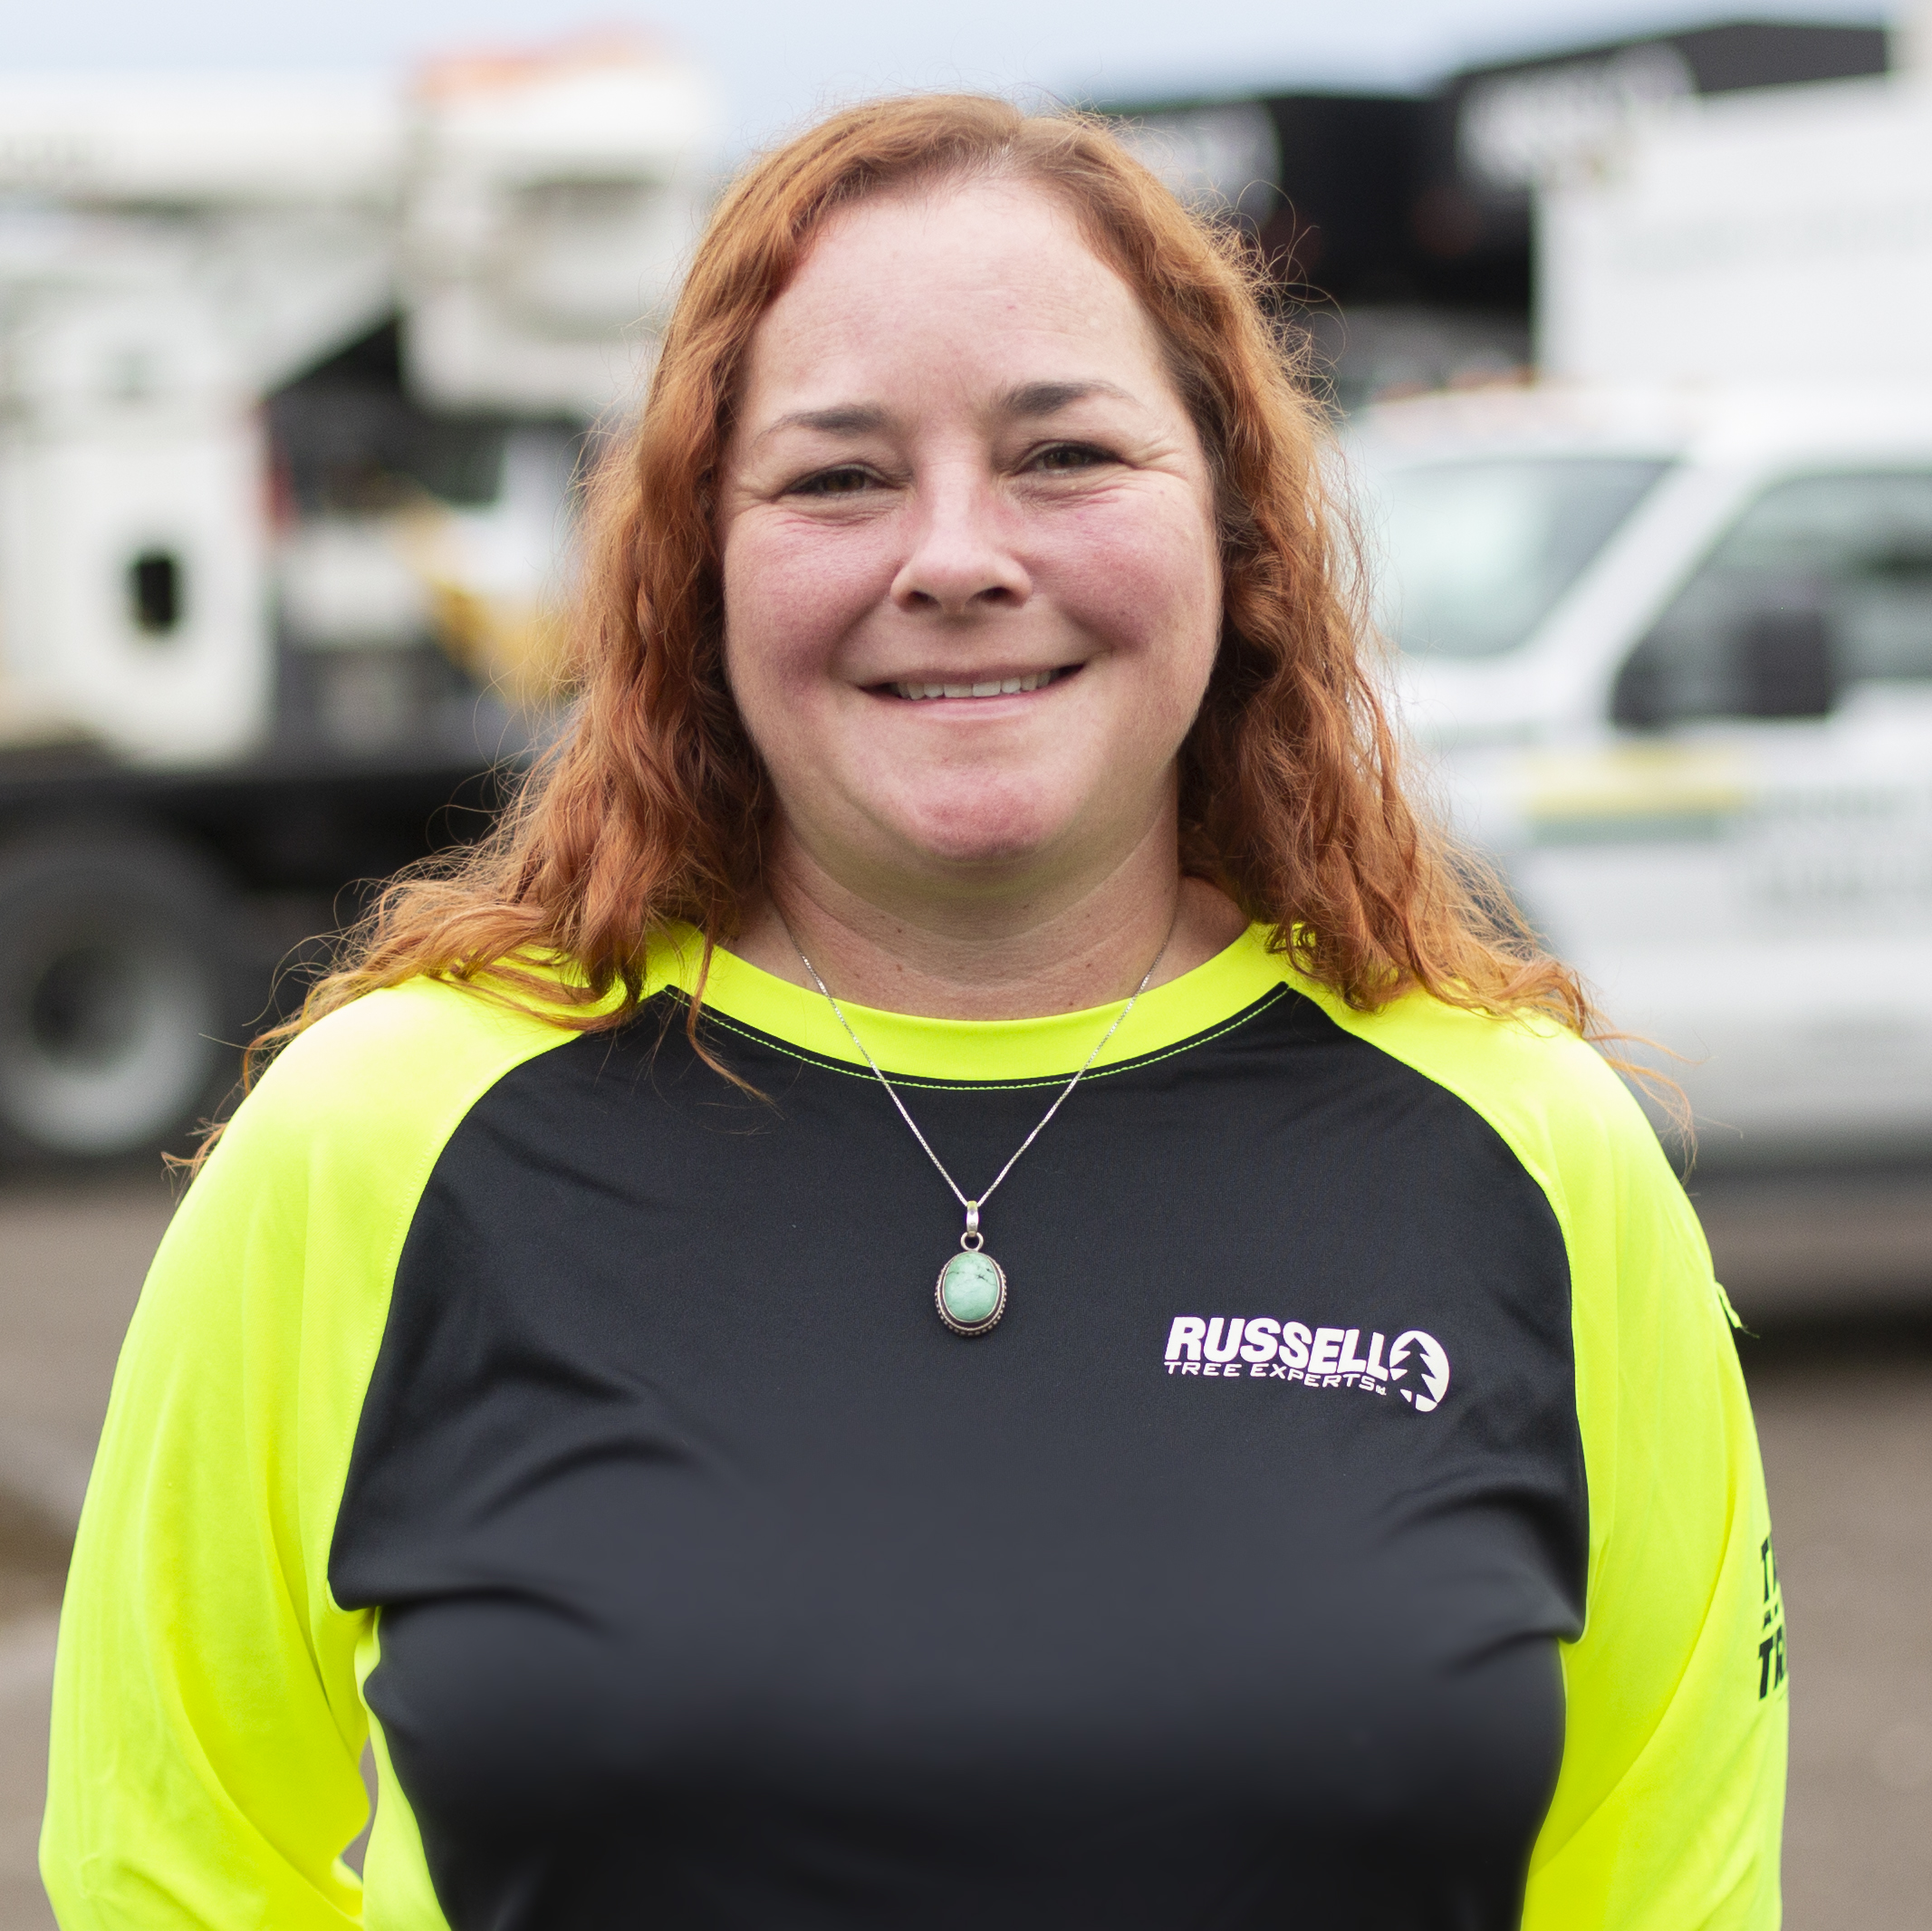 Krista Harris - PRODUCTION ARBORIST▶ BS in Horticulture Crop Science, The Ohio State University▶ ISA Certified Arborist® OH-6699A▶ ODA Comm. Pesticide Lic. #148078▶ CPR & First Aid